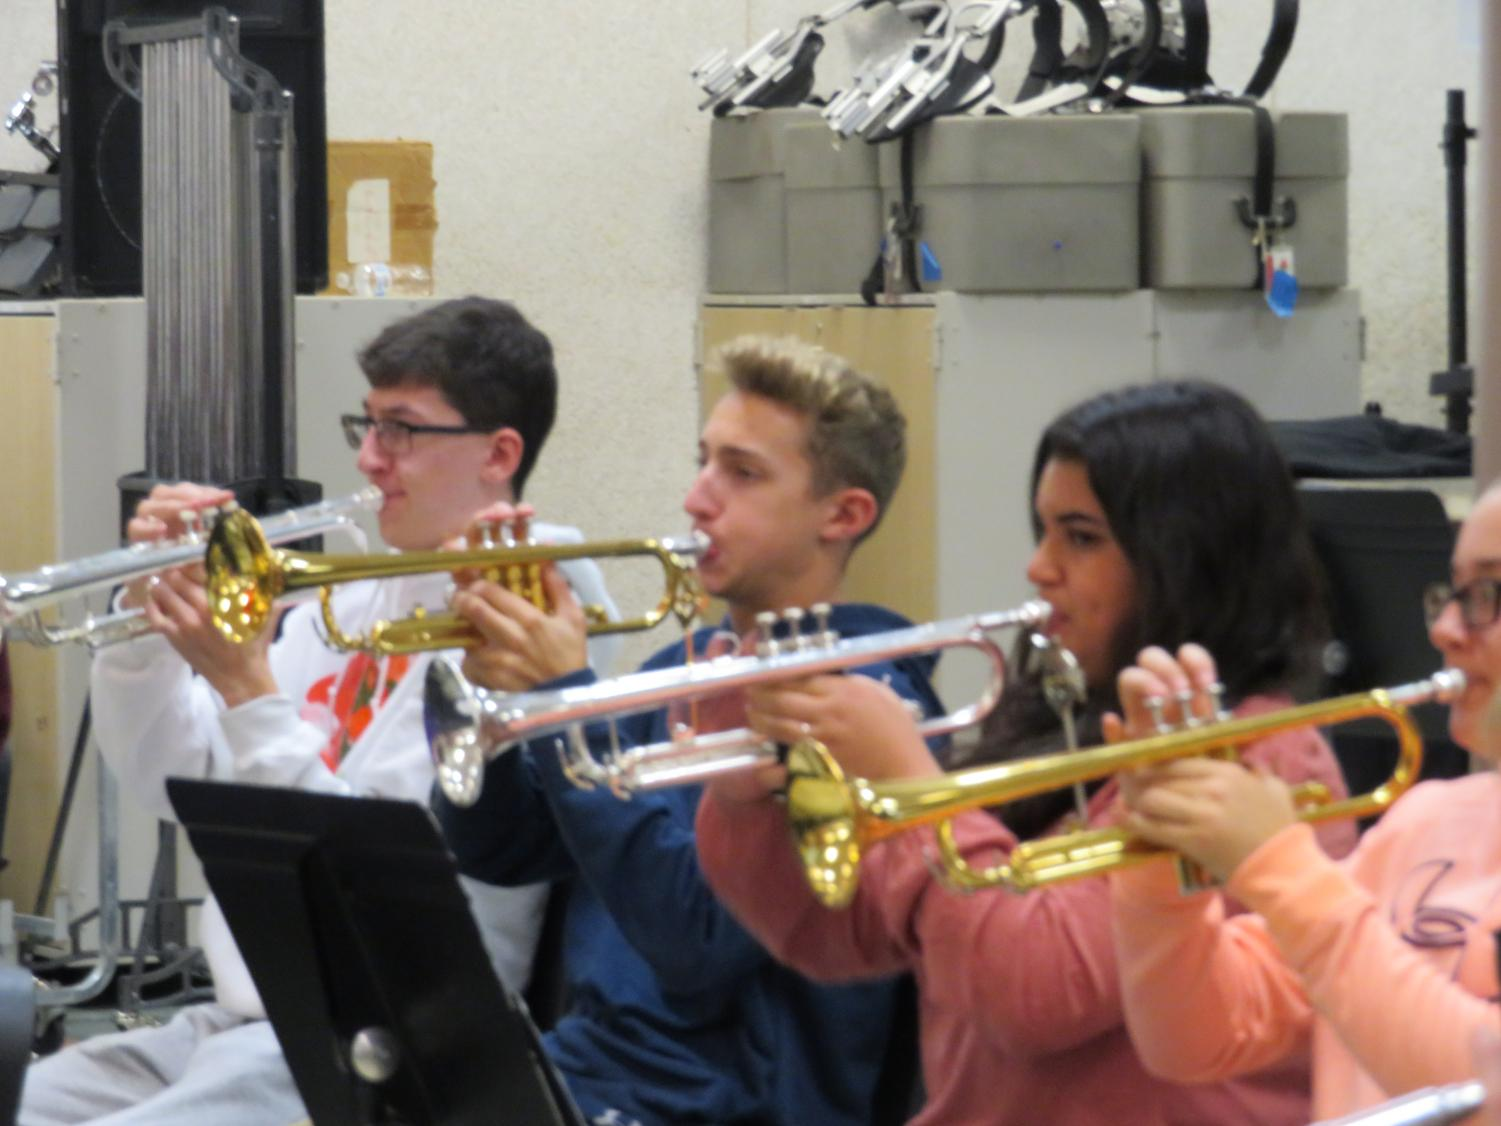 Senior Ryan Cullen and juniors Brandon White and Amara Cote practice their halftime music in band class.